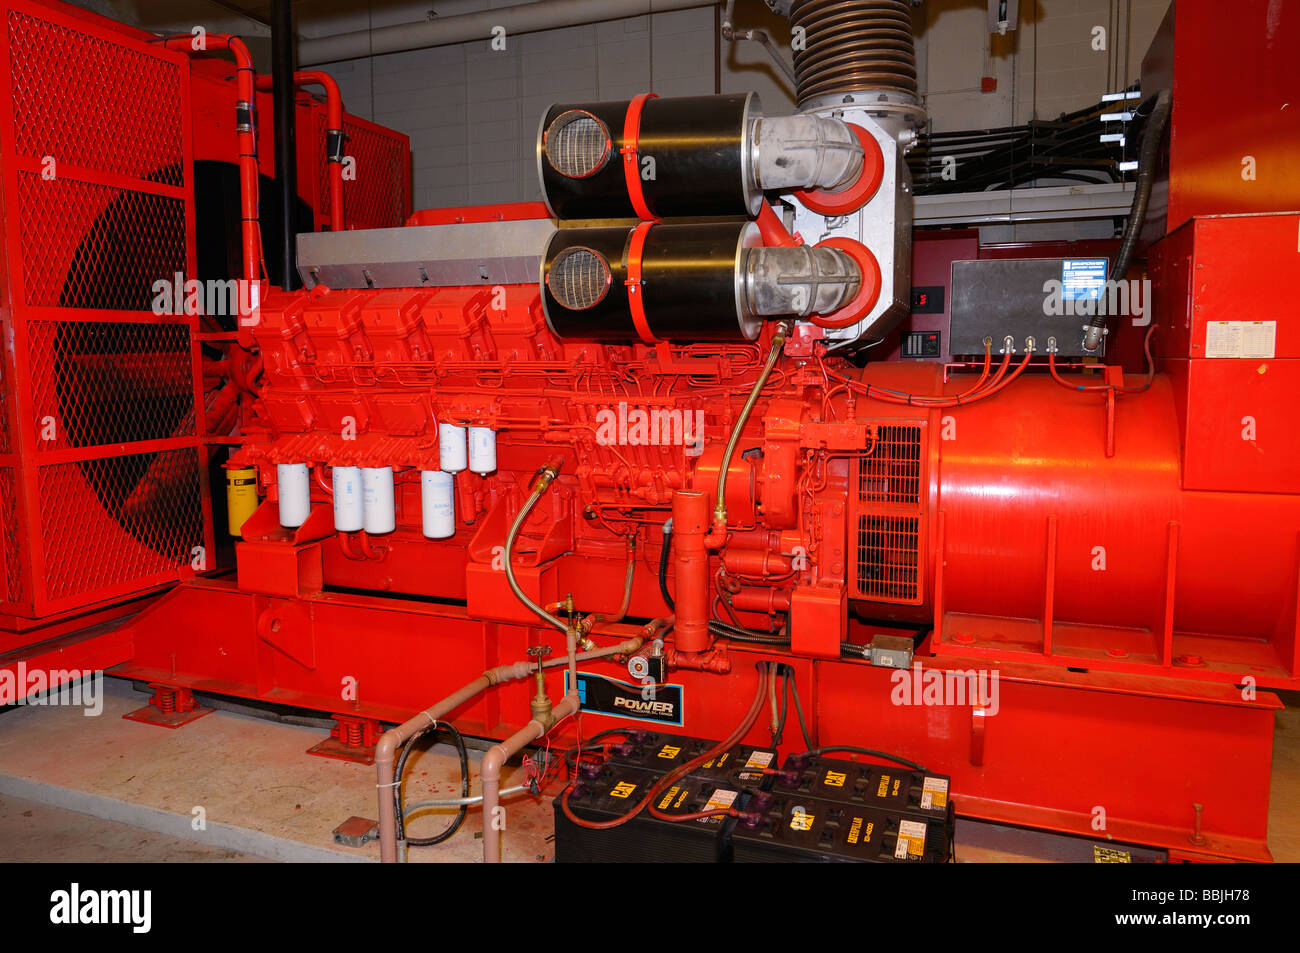 Large diesel engine for backup power on roof of highrise office building - Stock Image